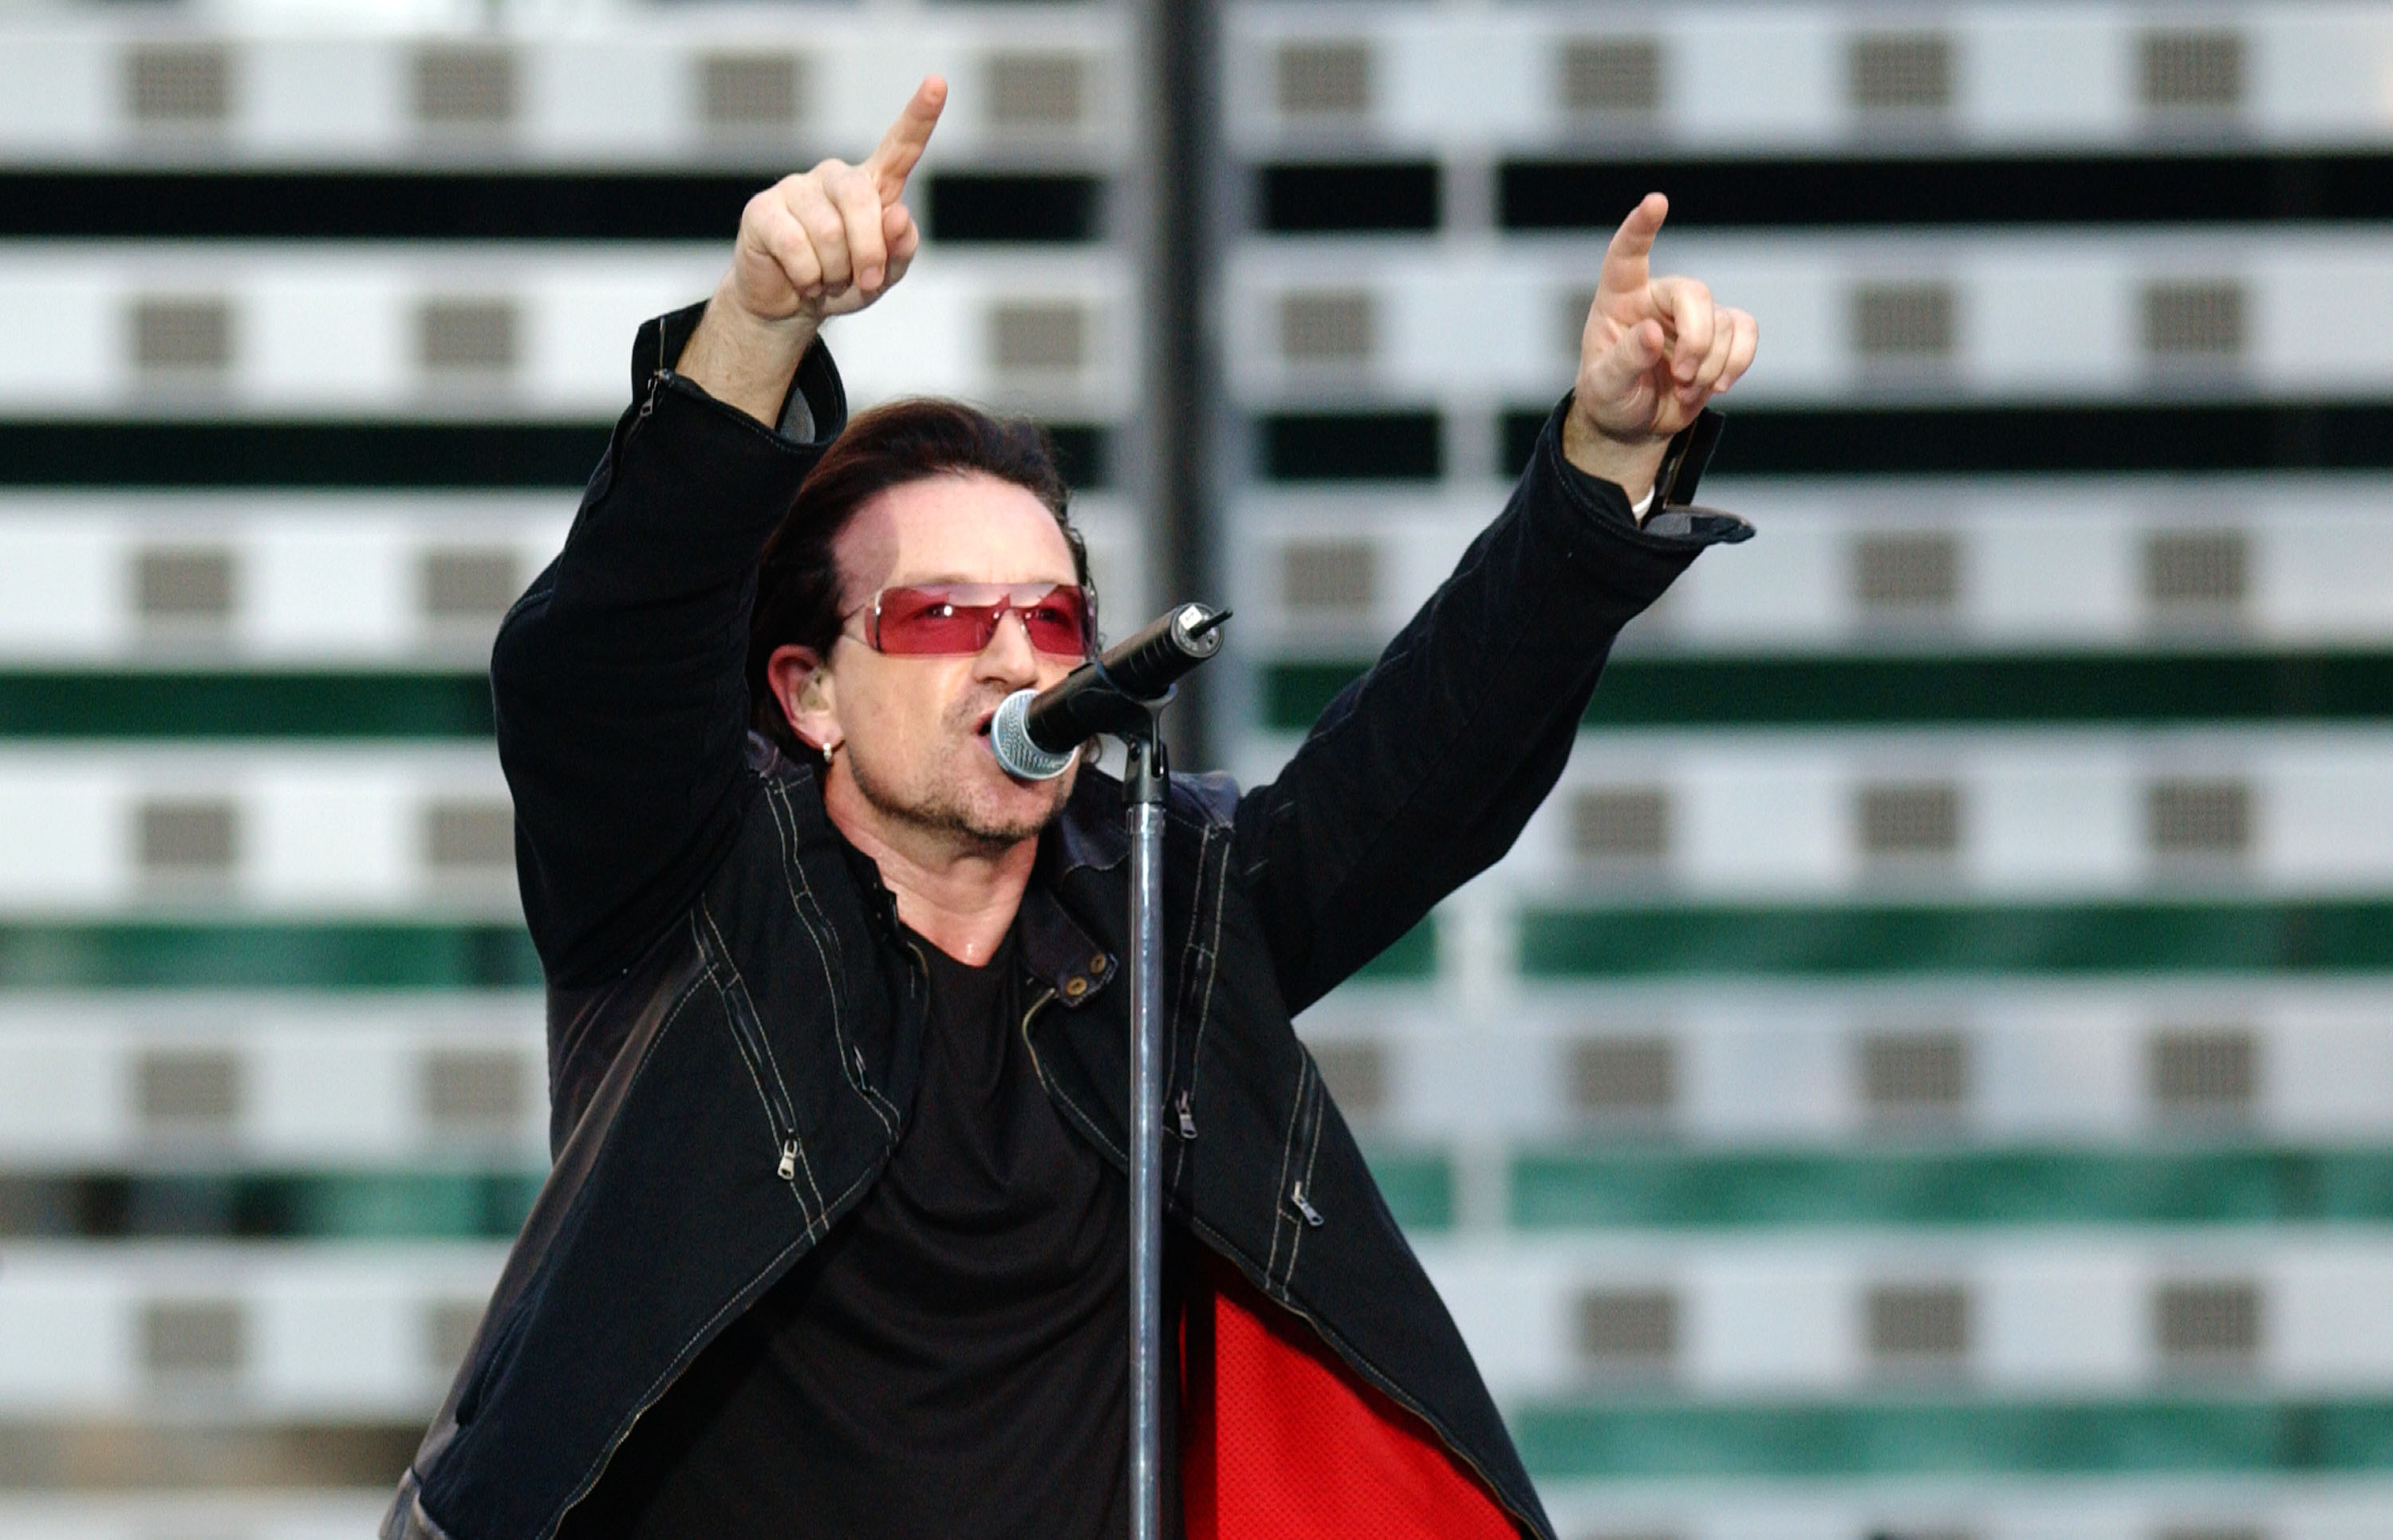 Bono visits Irish rugby team ahead of crucial Six Nations game against England